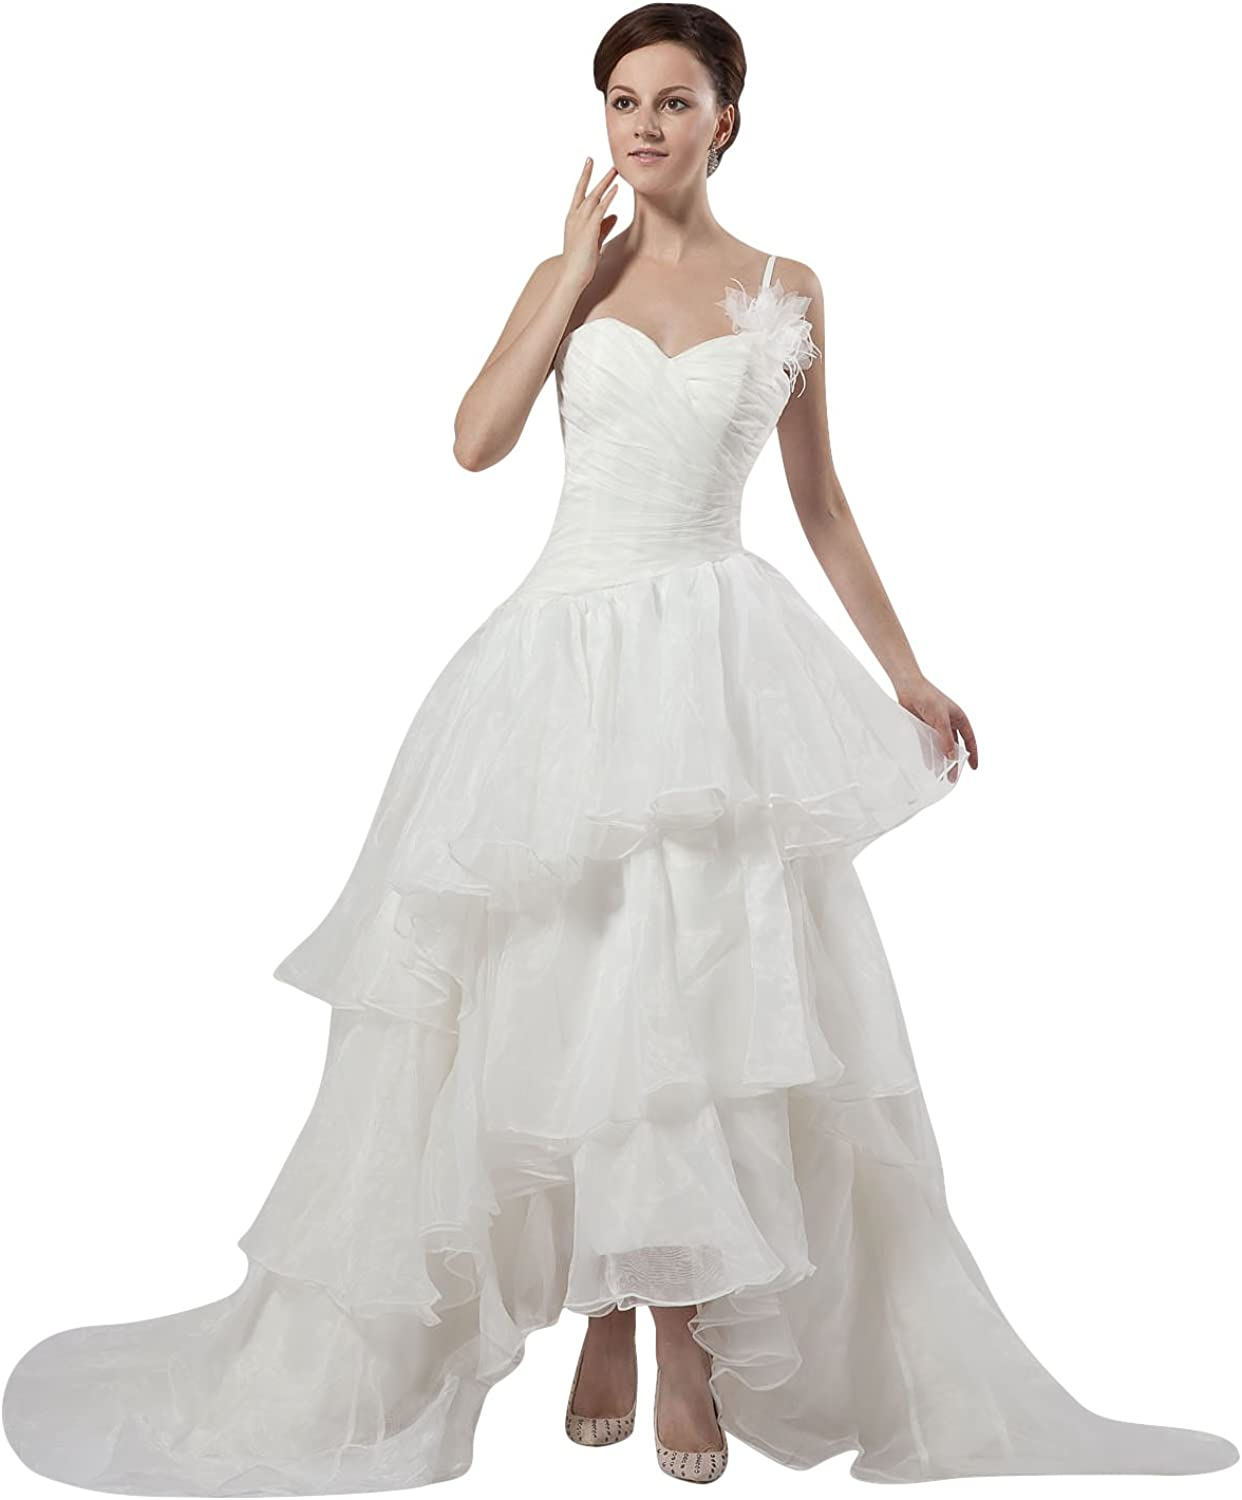 Vampal Ivory One Shoulder Sweetheart Organza Wedding Dress With Flowers